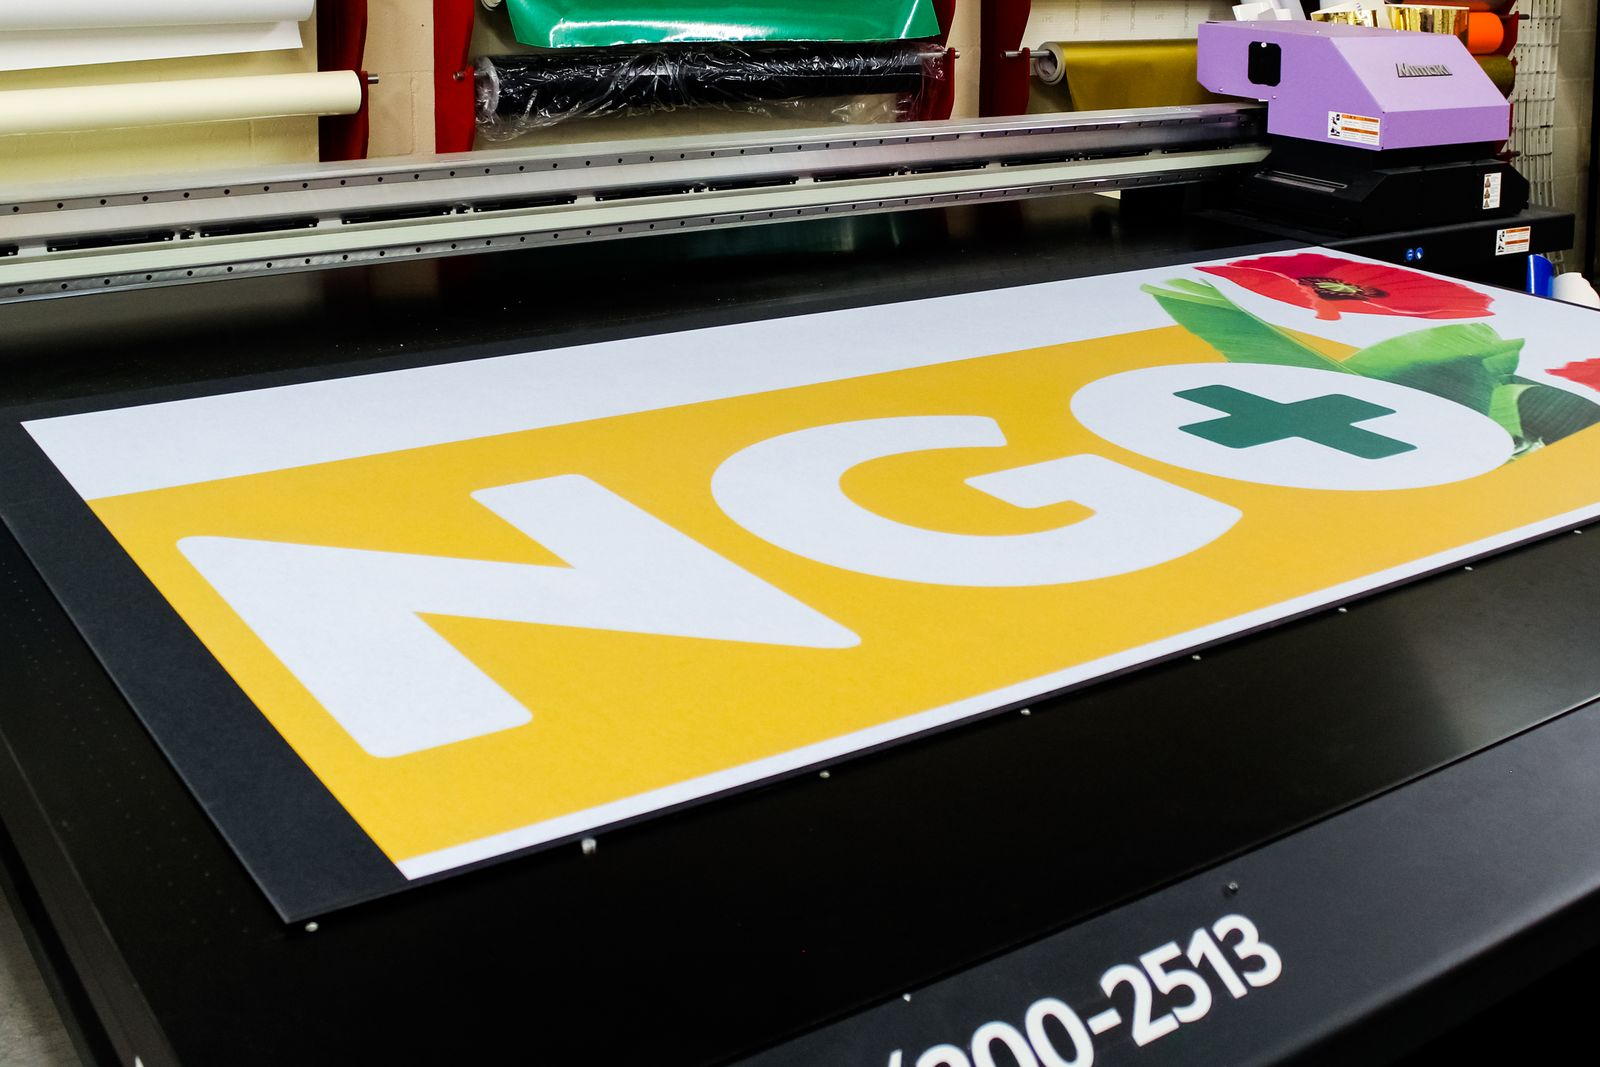 Gatorboard direct printing process